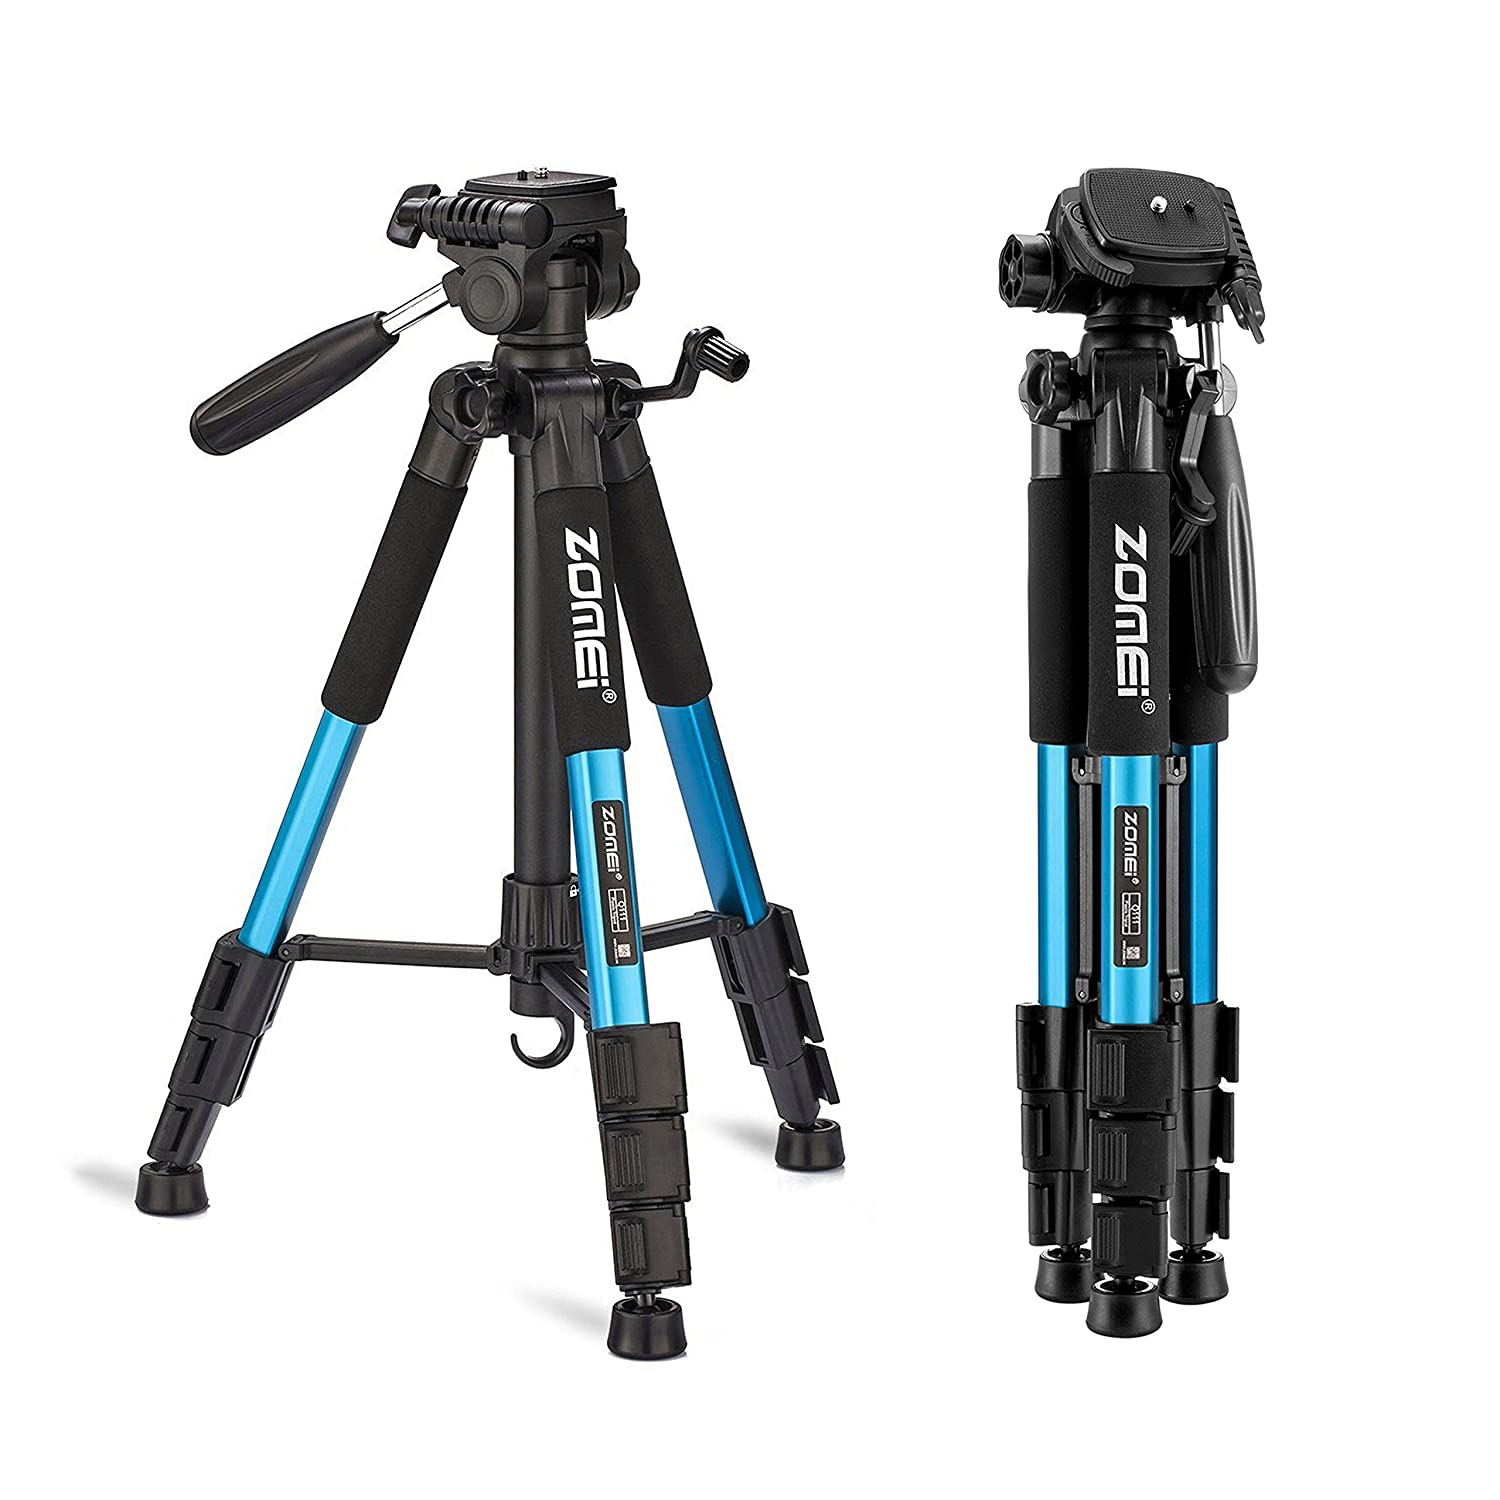 ZOMEi Compact Travel Tripod 55inch Portable Stand - Easily Adjustable Legs - 3-Way Panhead Digital SLR Camera Canon EOS Nikon Sony Samsung - Blue